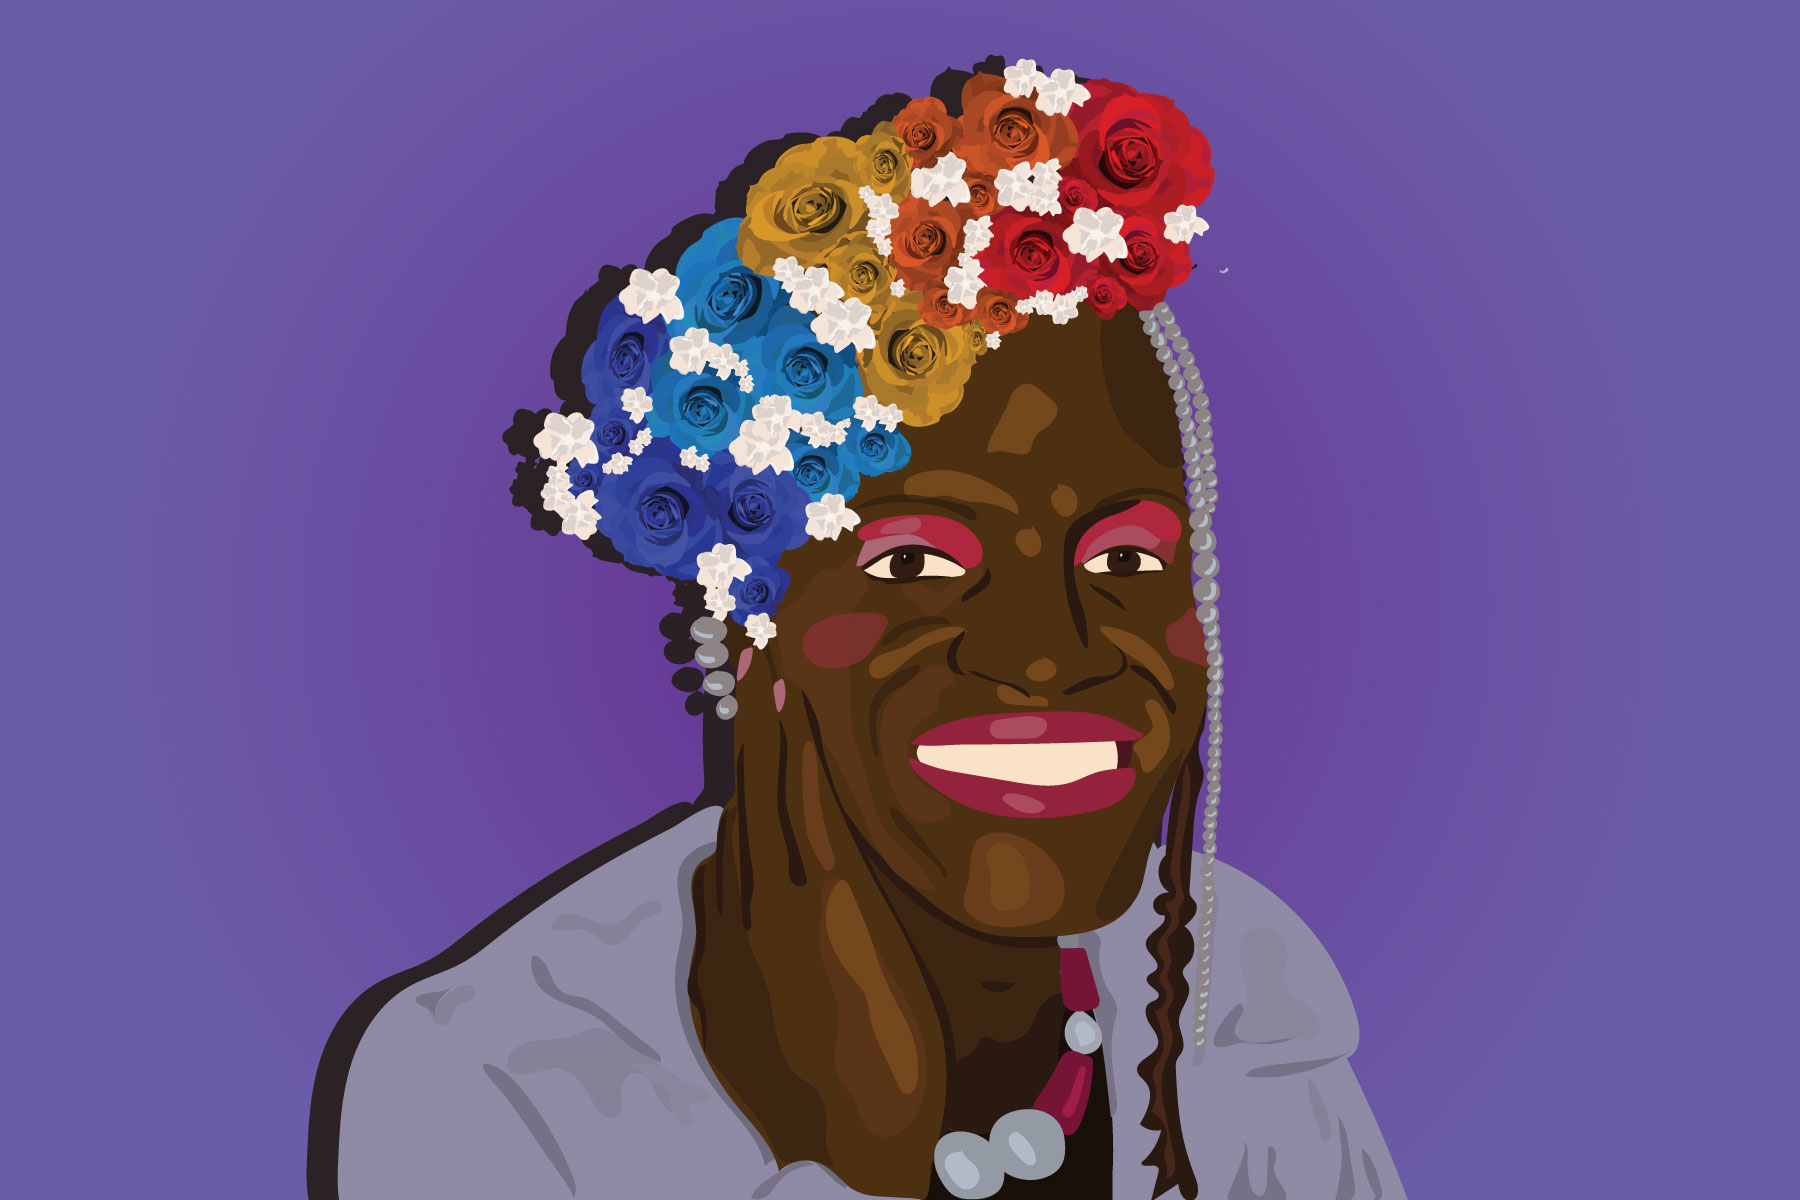 Illustration of Marsha P. Johnson, an important figure in black LGBT+ history